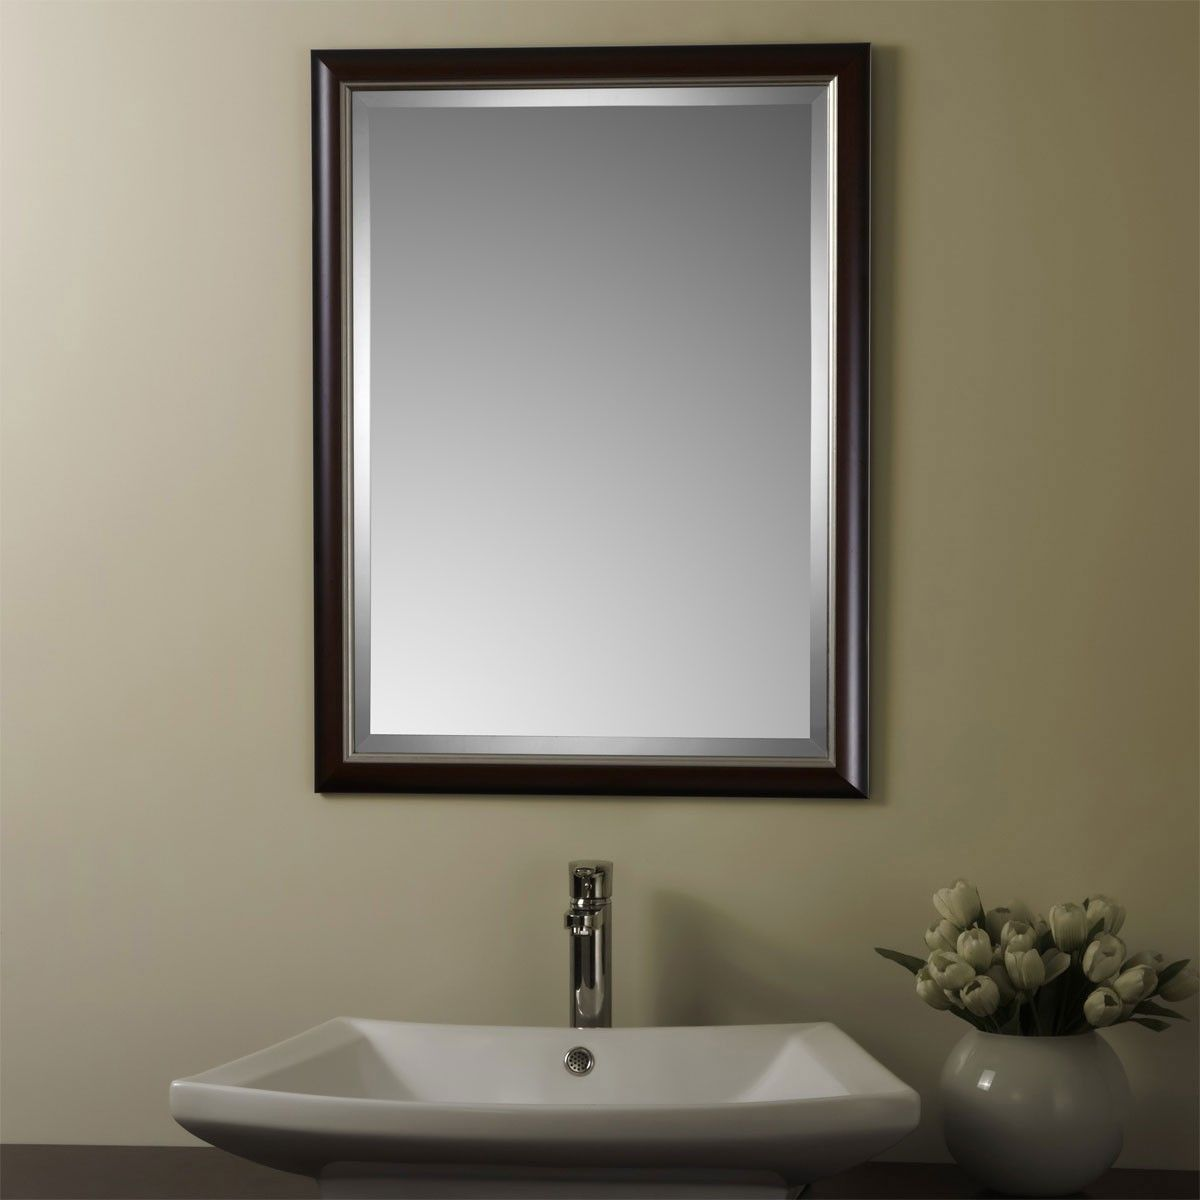 24 x 32 In Reversible Wood-imitation Framed Bathroom Silvered Mirror (YJ-1746H)